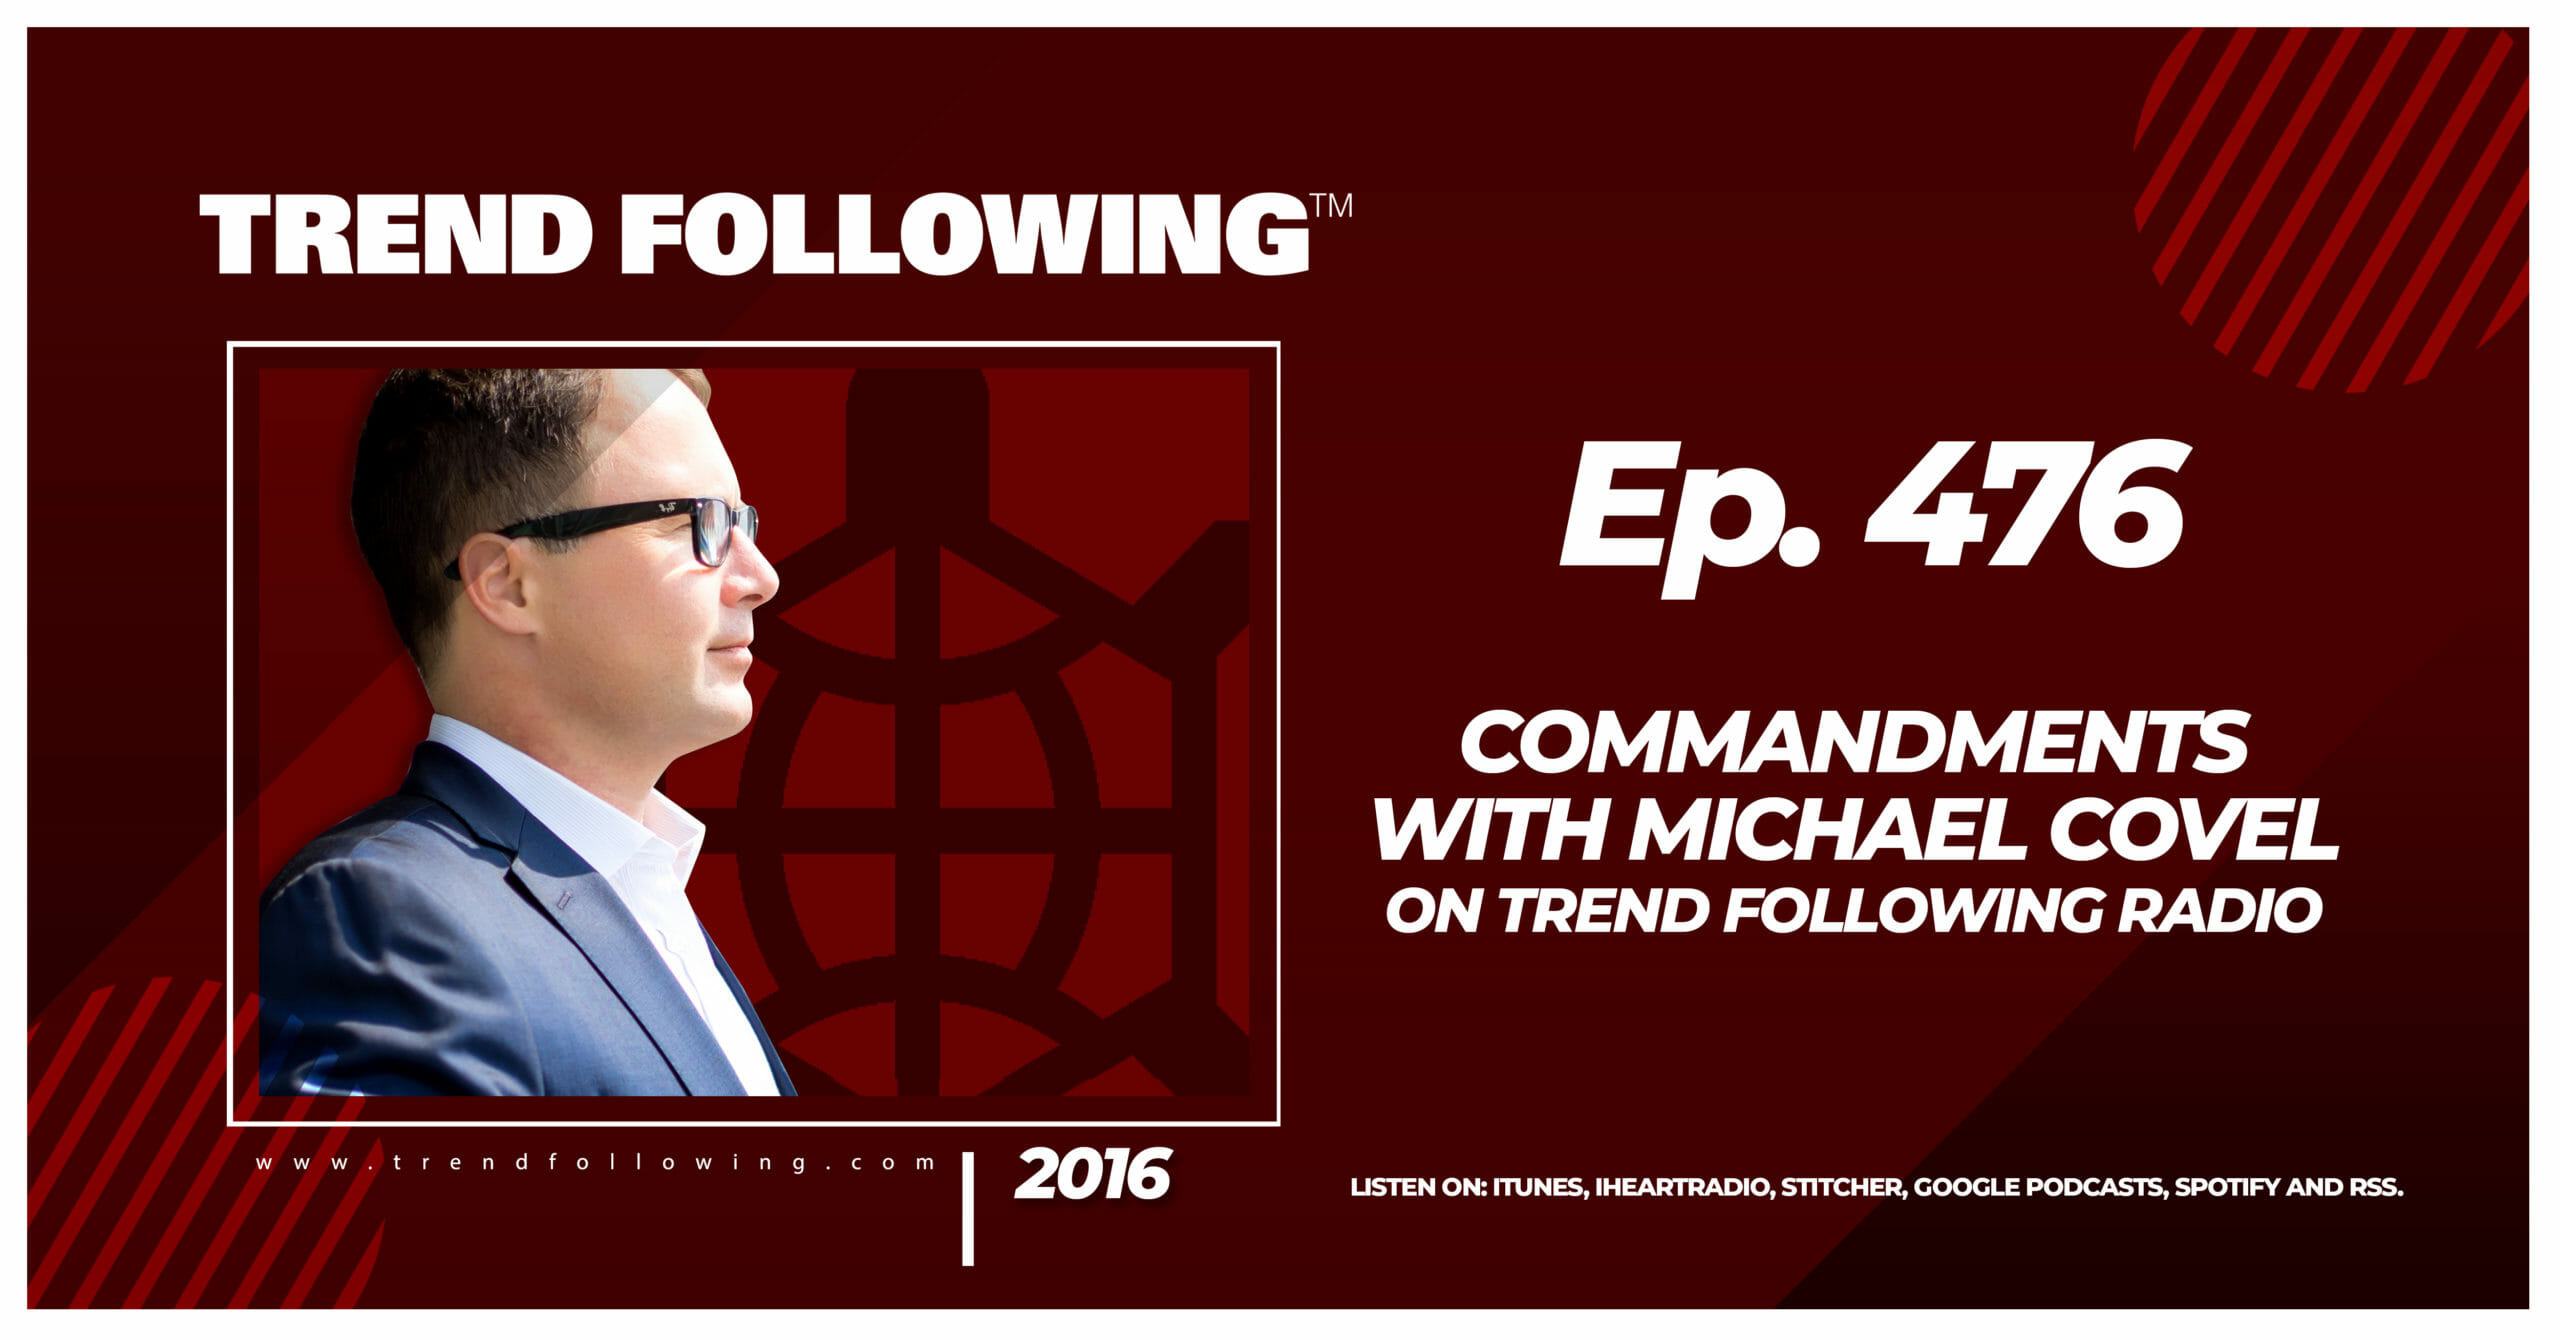 Commandments with Michael Covel on Trend Following Radio